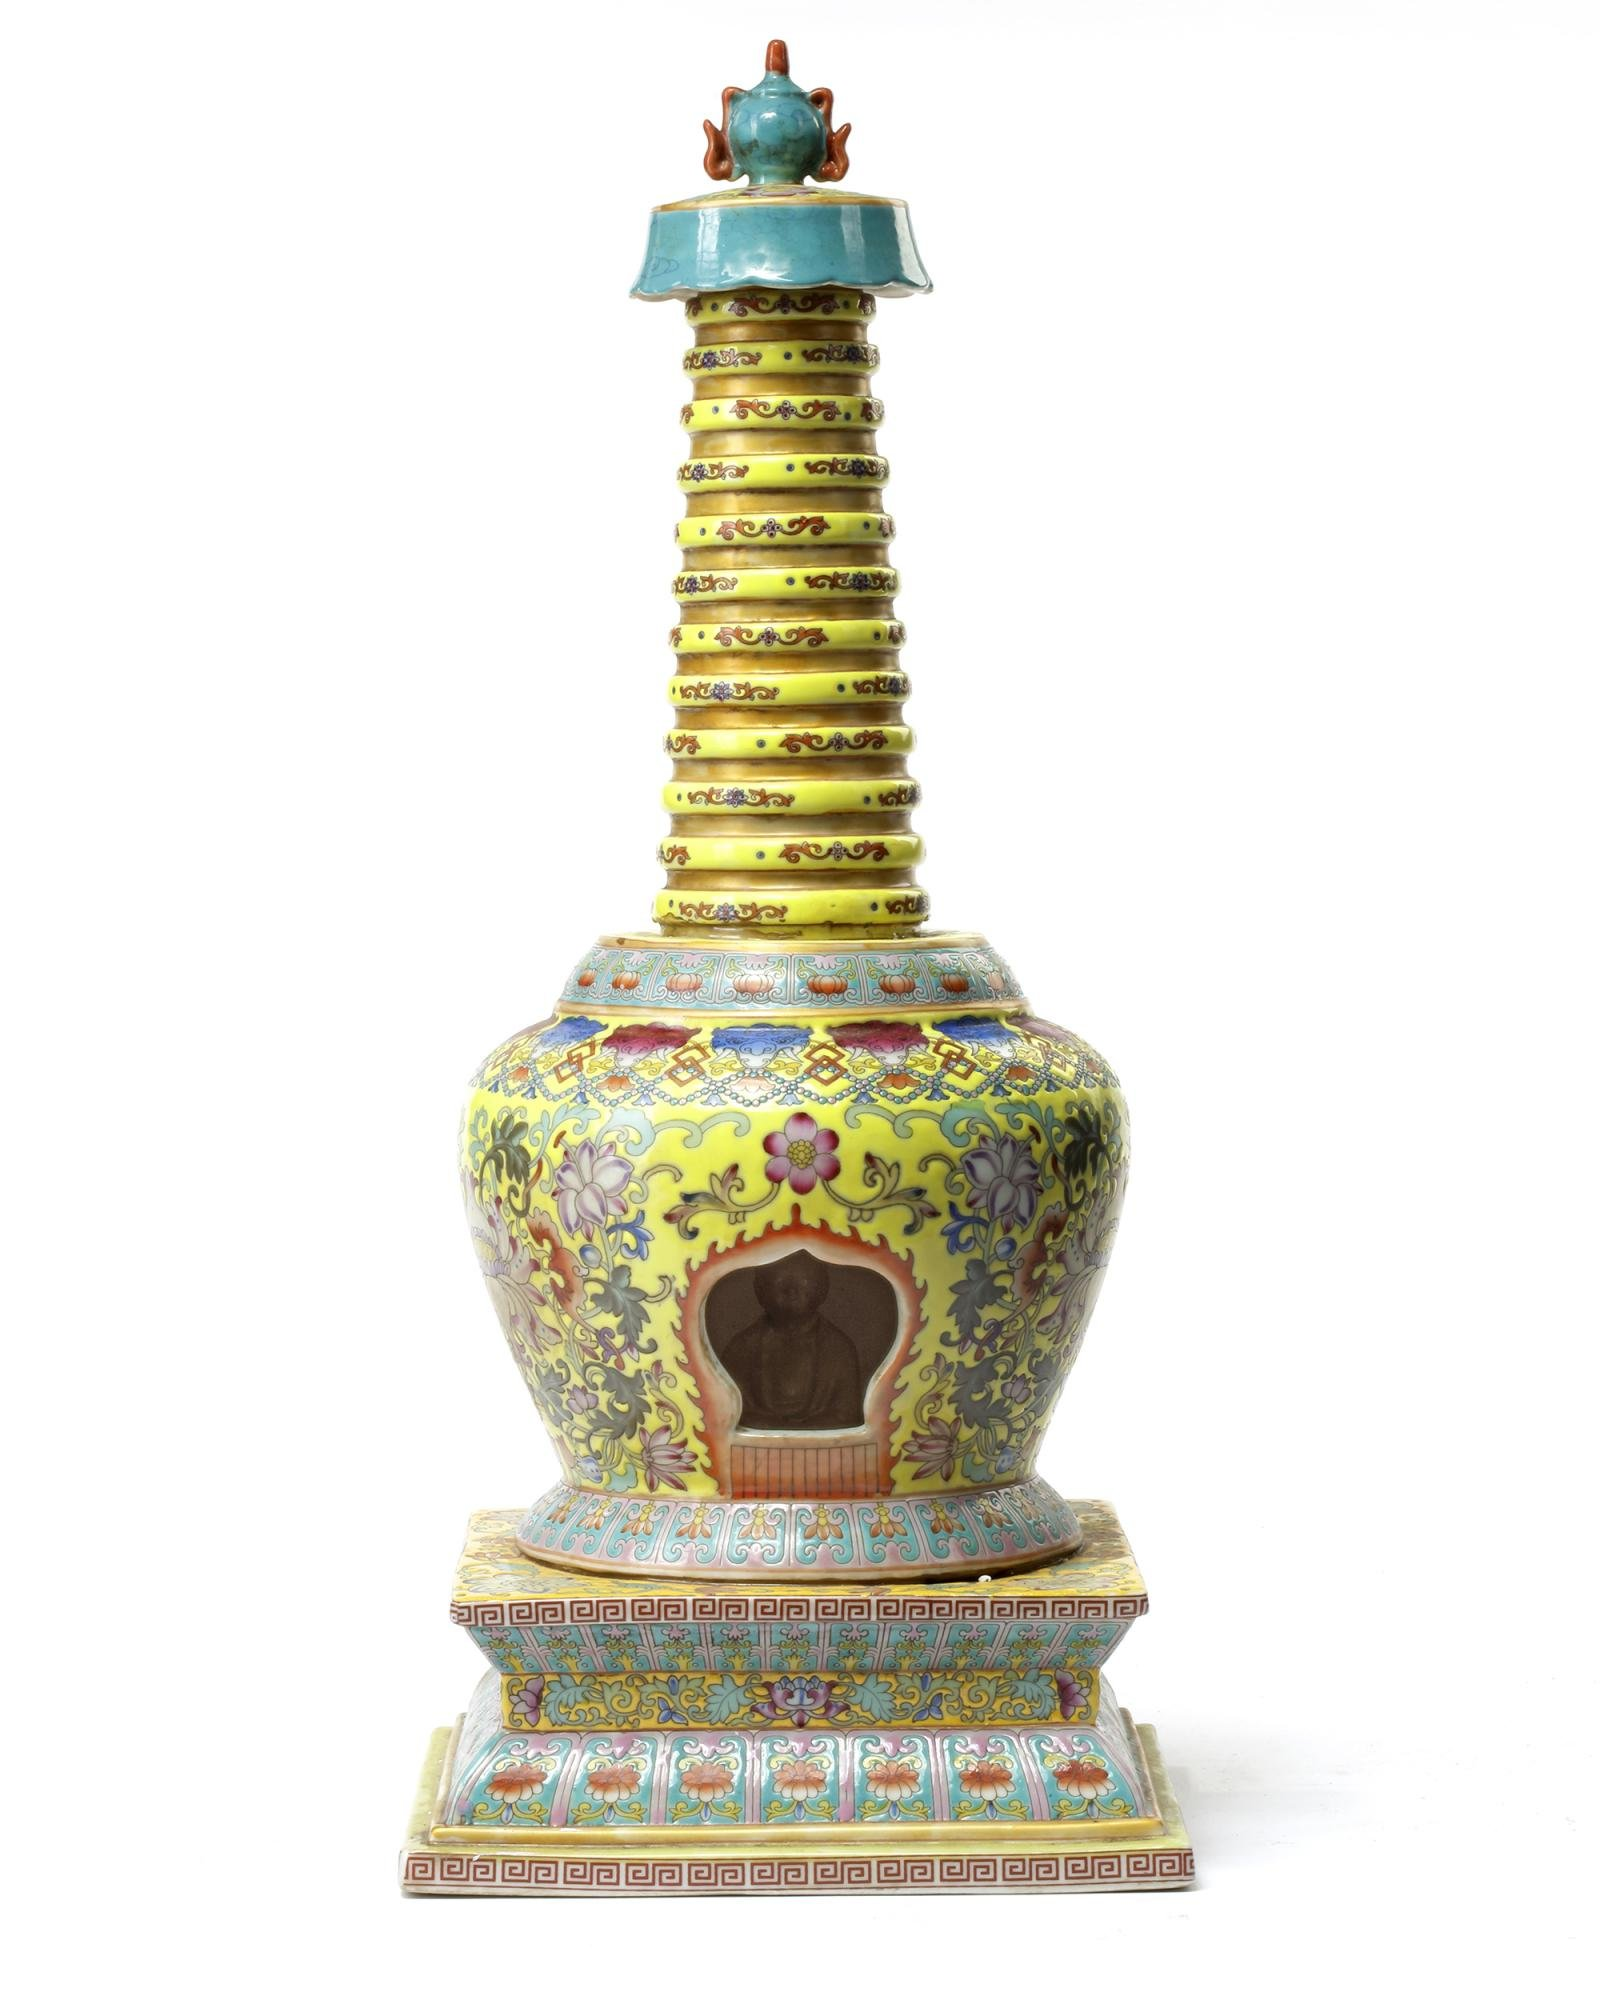 A CHINESE FAMILLE ROSE STUPA, CHINA, QING DYNASTY